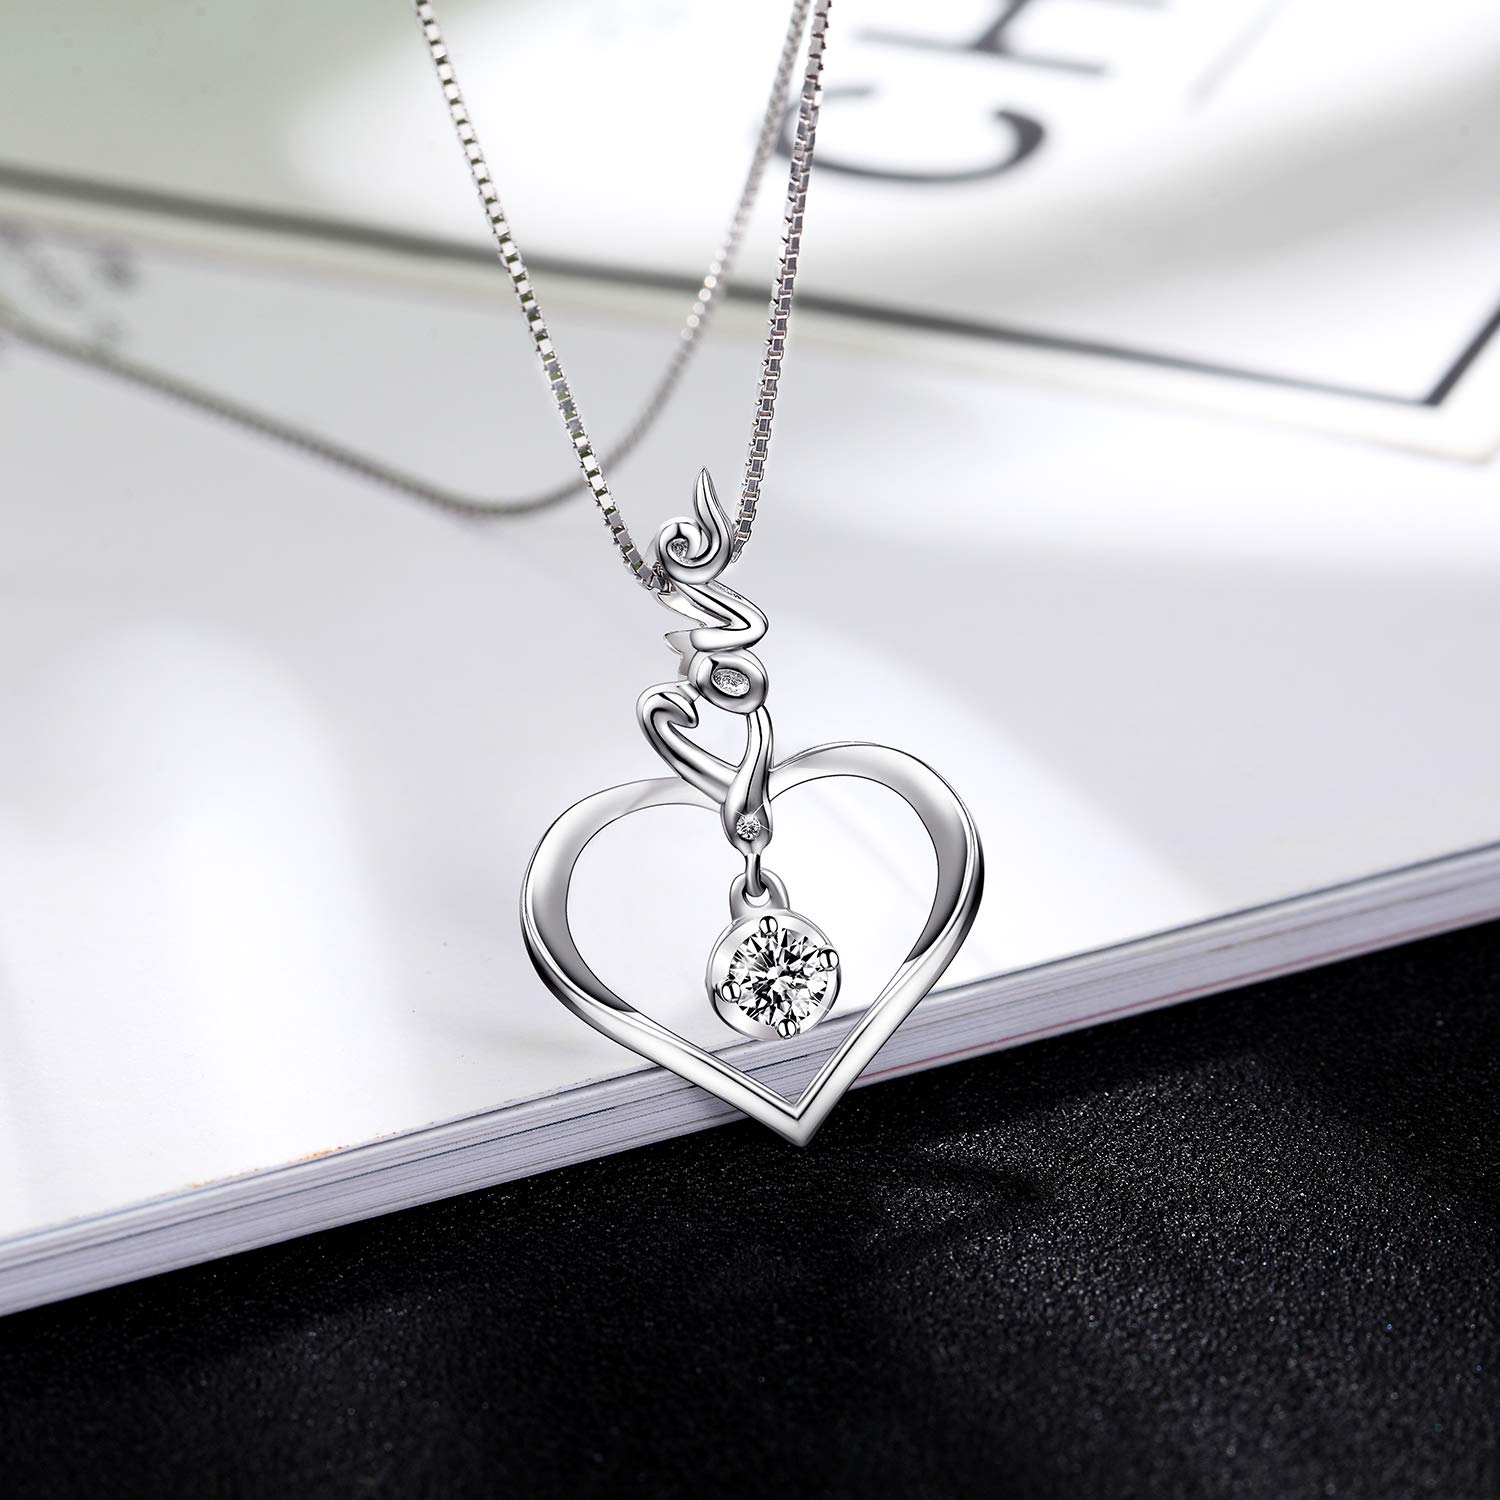 BLOVIN 925 Sterling Silver Engraved Love Heart Pendant Necklace Jewelry Gifts for Women Girls Mom Girlfriend Wife